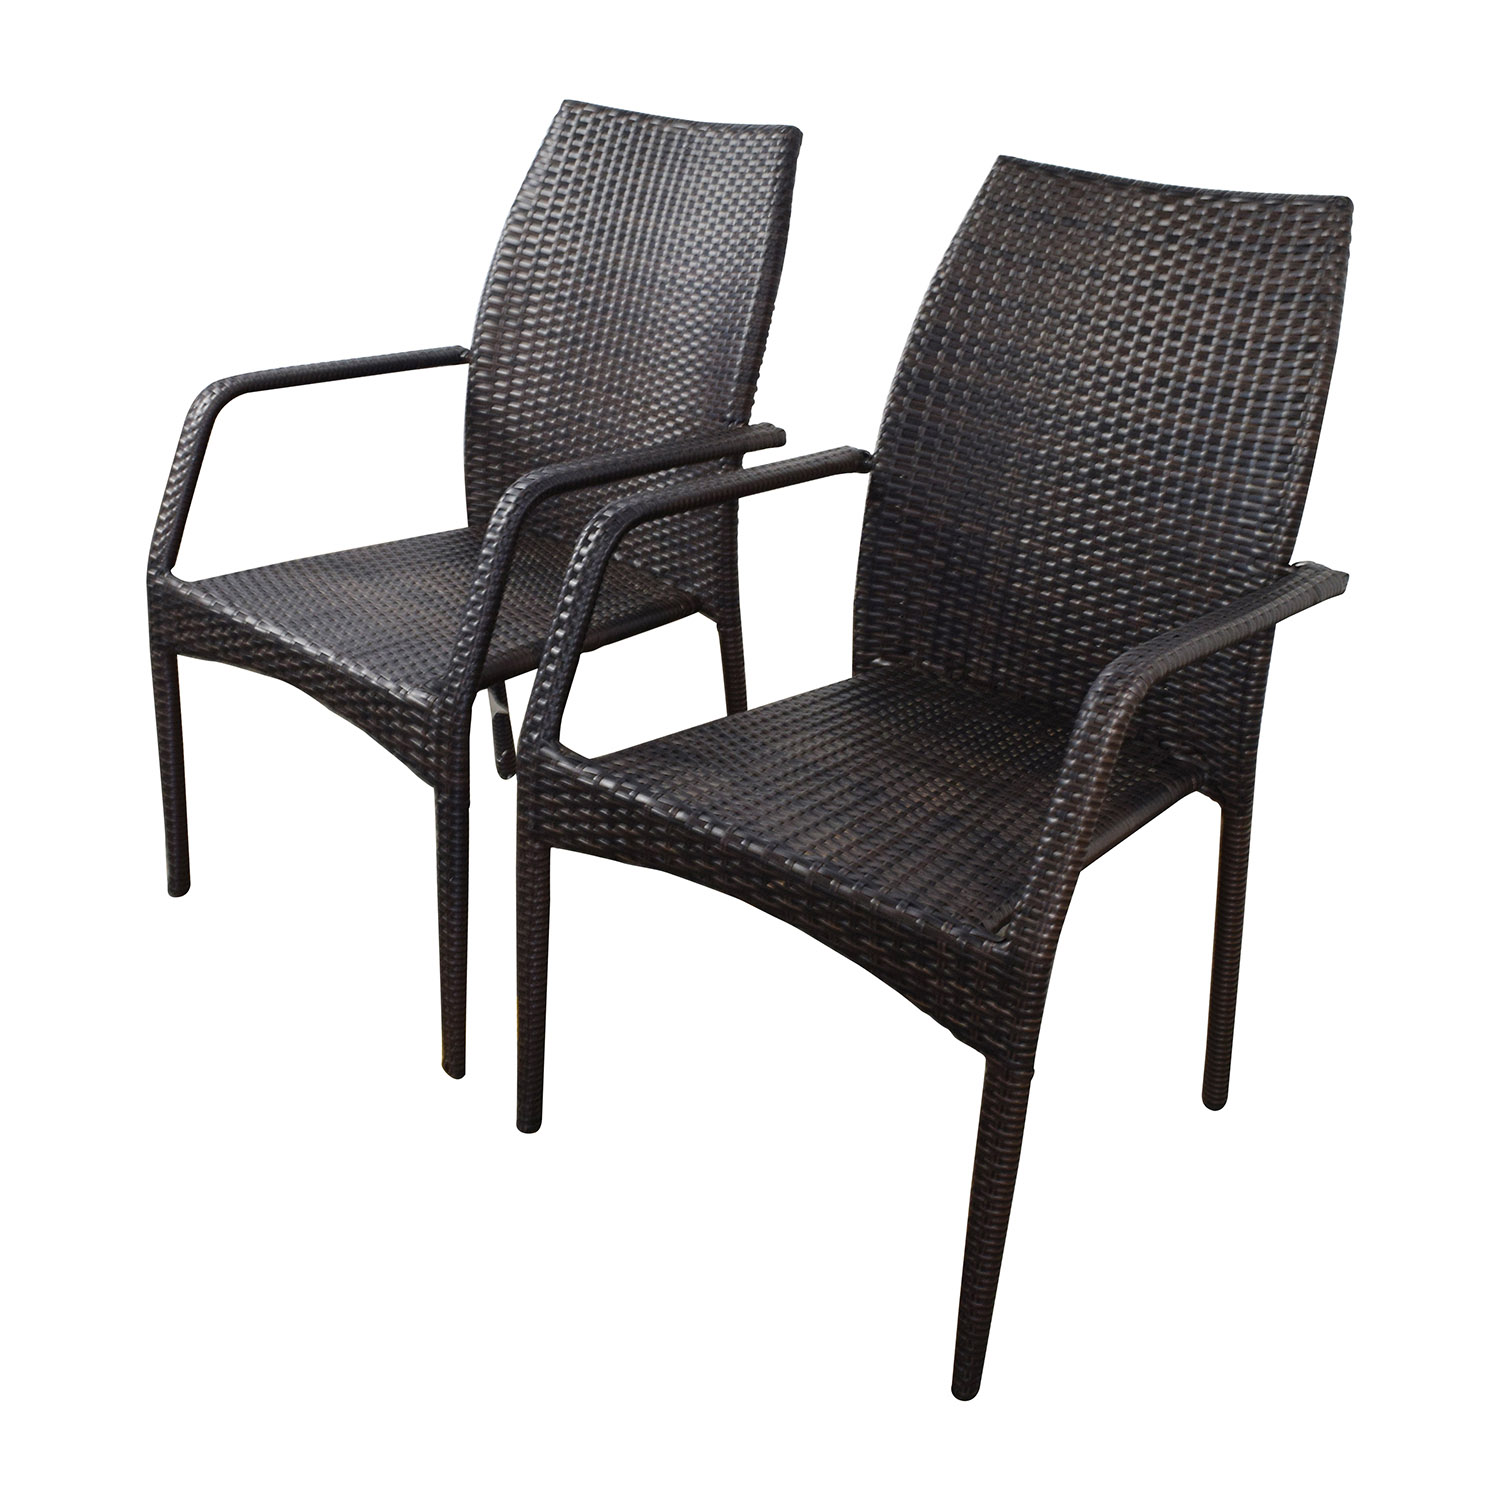 Phenomenal 85 Off Dark Brown Wicker Outdoor Dining Chairs Chairs Onthecornerstone Fun Painted Chair Ideas Images Onthecornerstoneorg